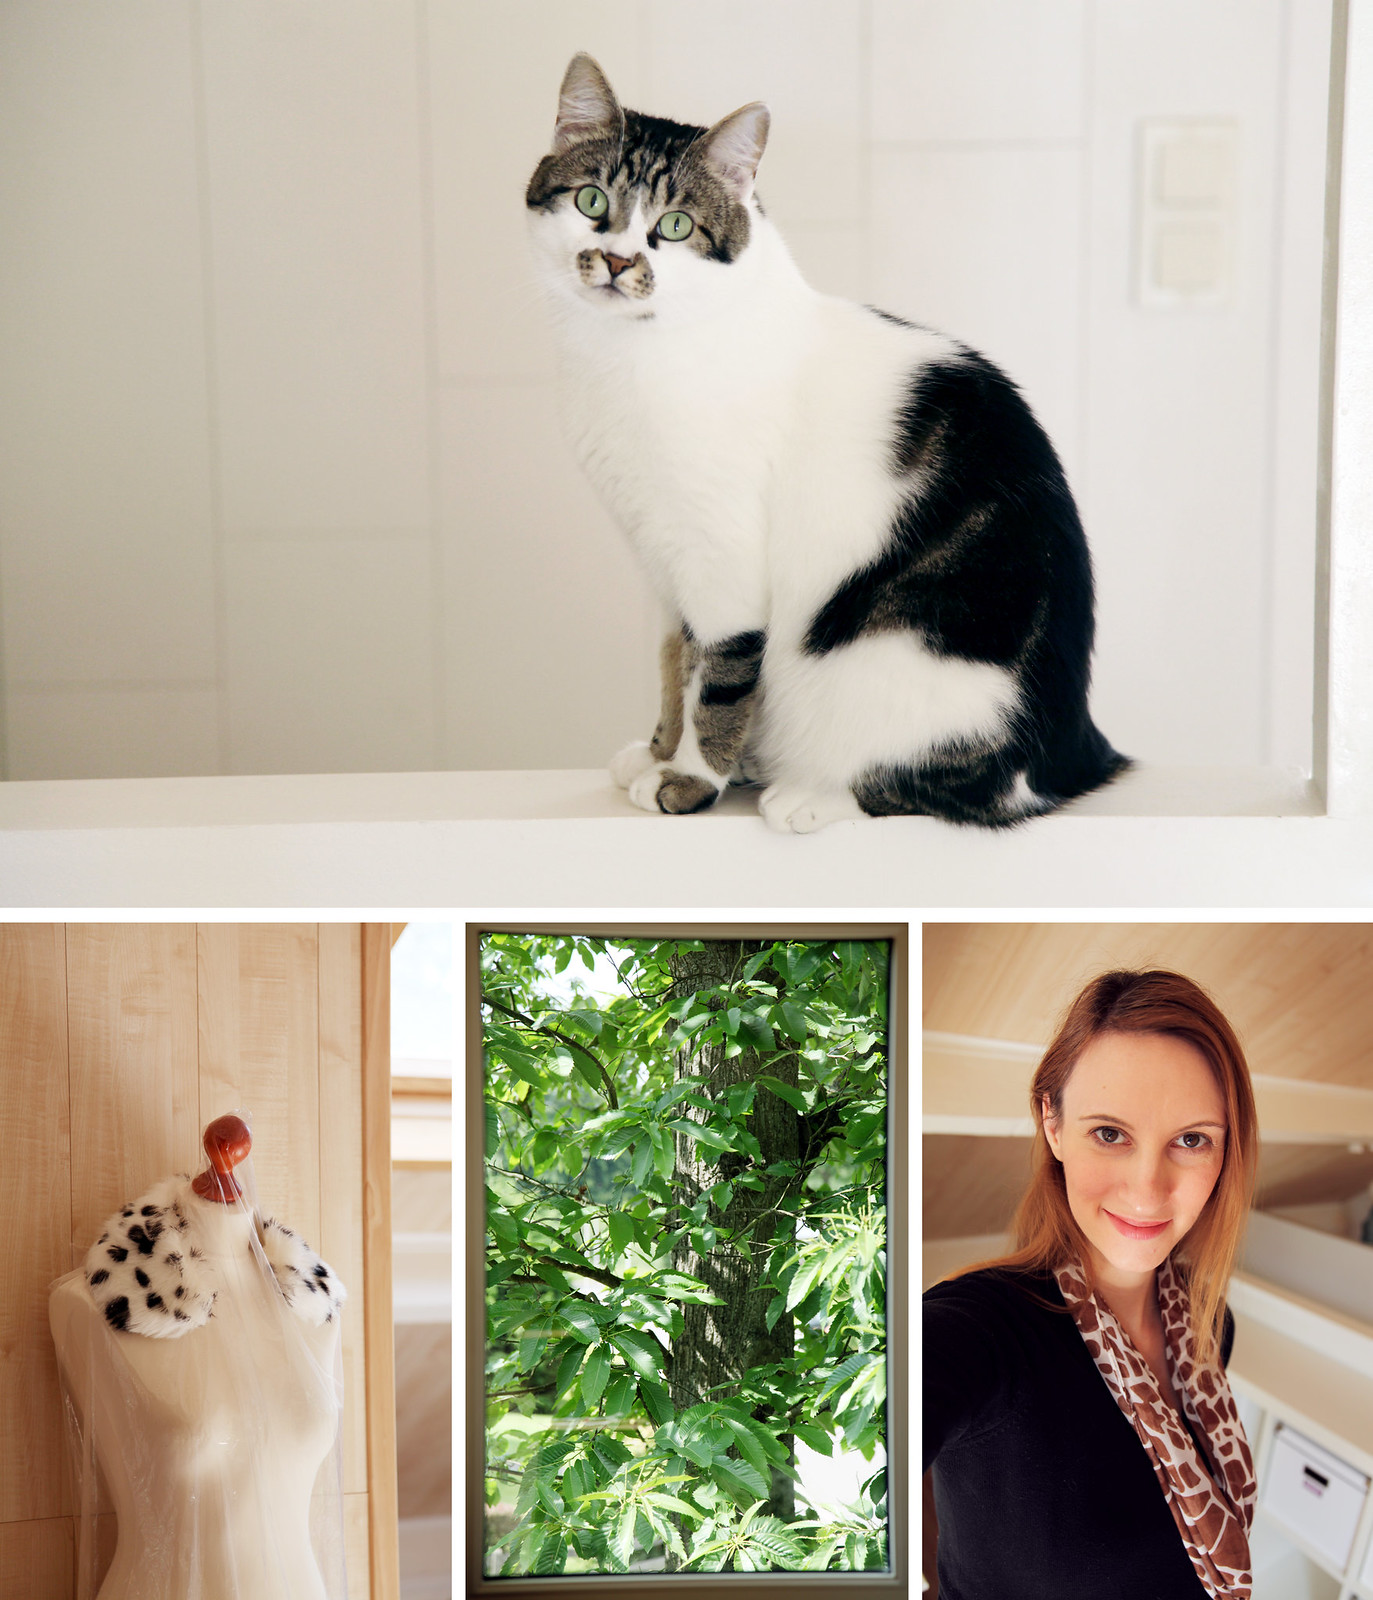 home cat tree interior summer mannequin portrait selfie collage